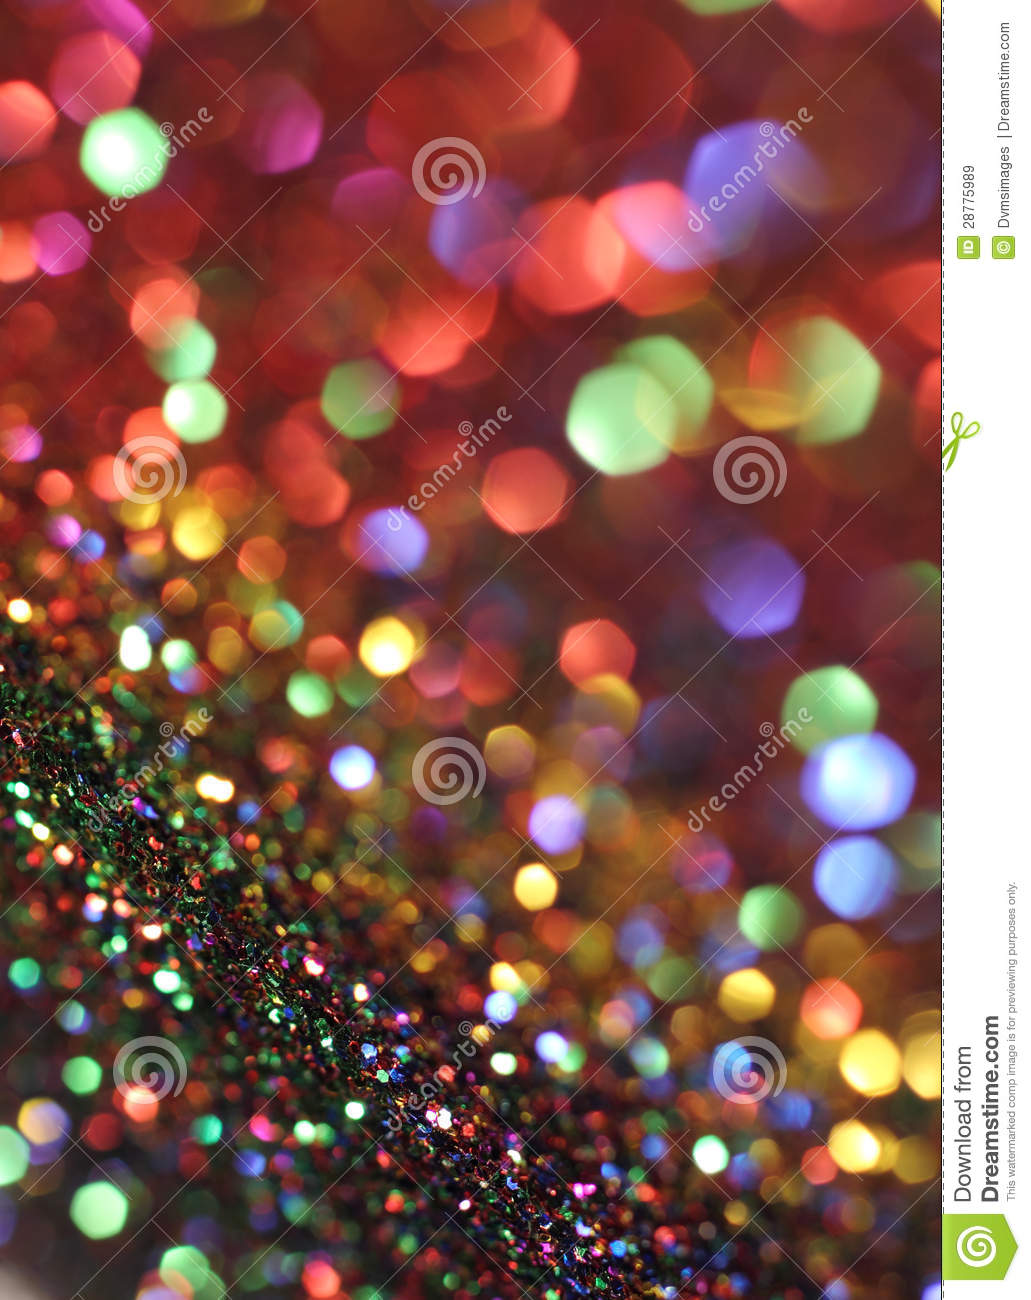 rainbow bokeh red glitter - photo #21